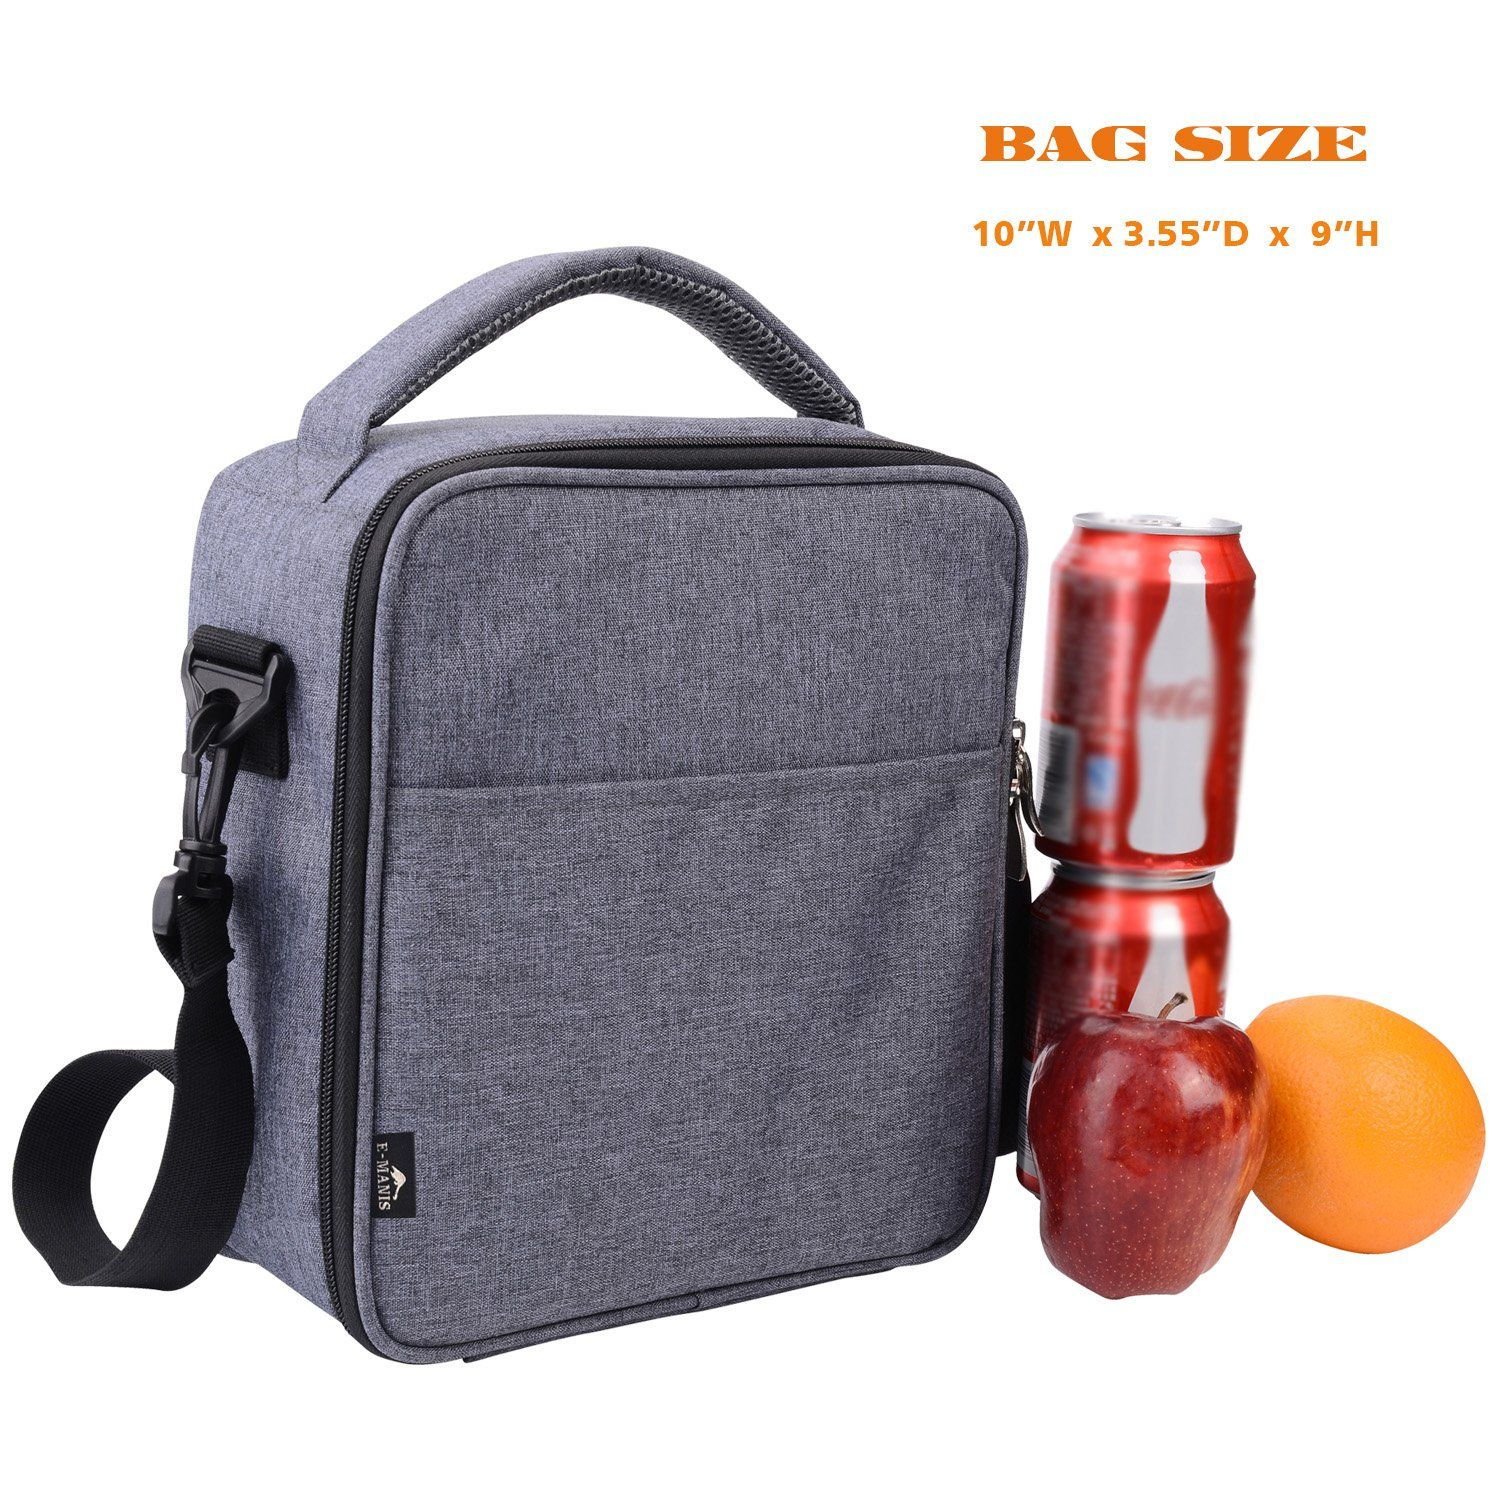 Emanis Insulated Lunch Bag Lunch Box Cooler Bag with Shoulder Strap for Men  Women Kids gray     You can find more details by visiting the image link. 1856bcc6eb413